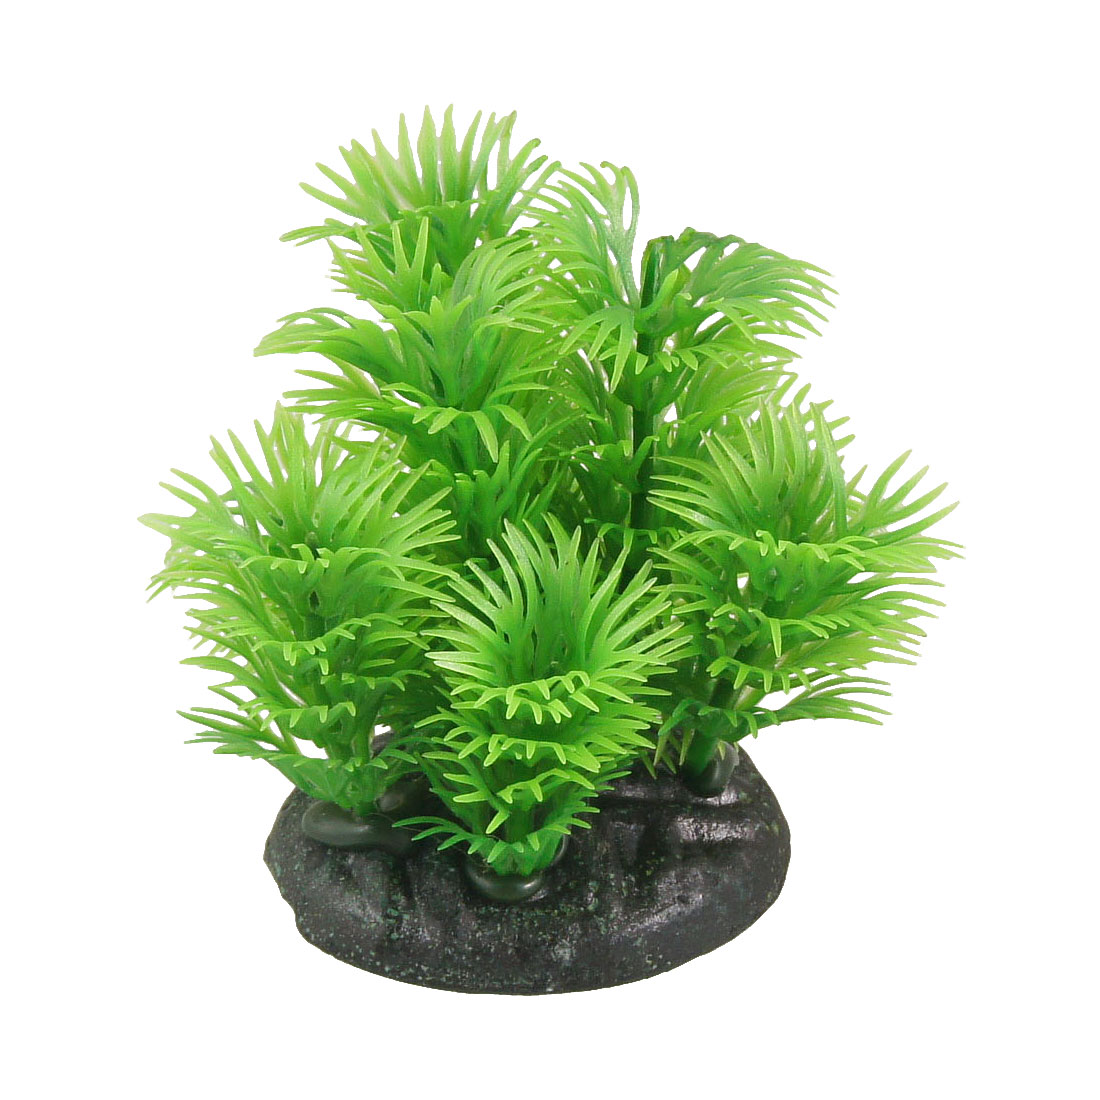 "3.5"" Height Resin Base Plastic Green Leaves Water Grass Plants for Aquarium Fish Tank"